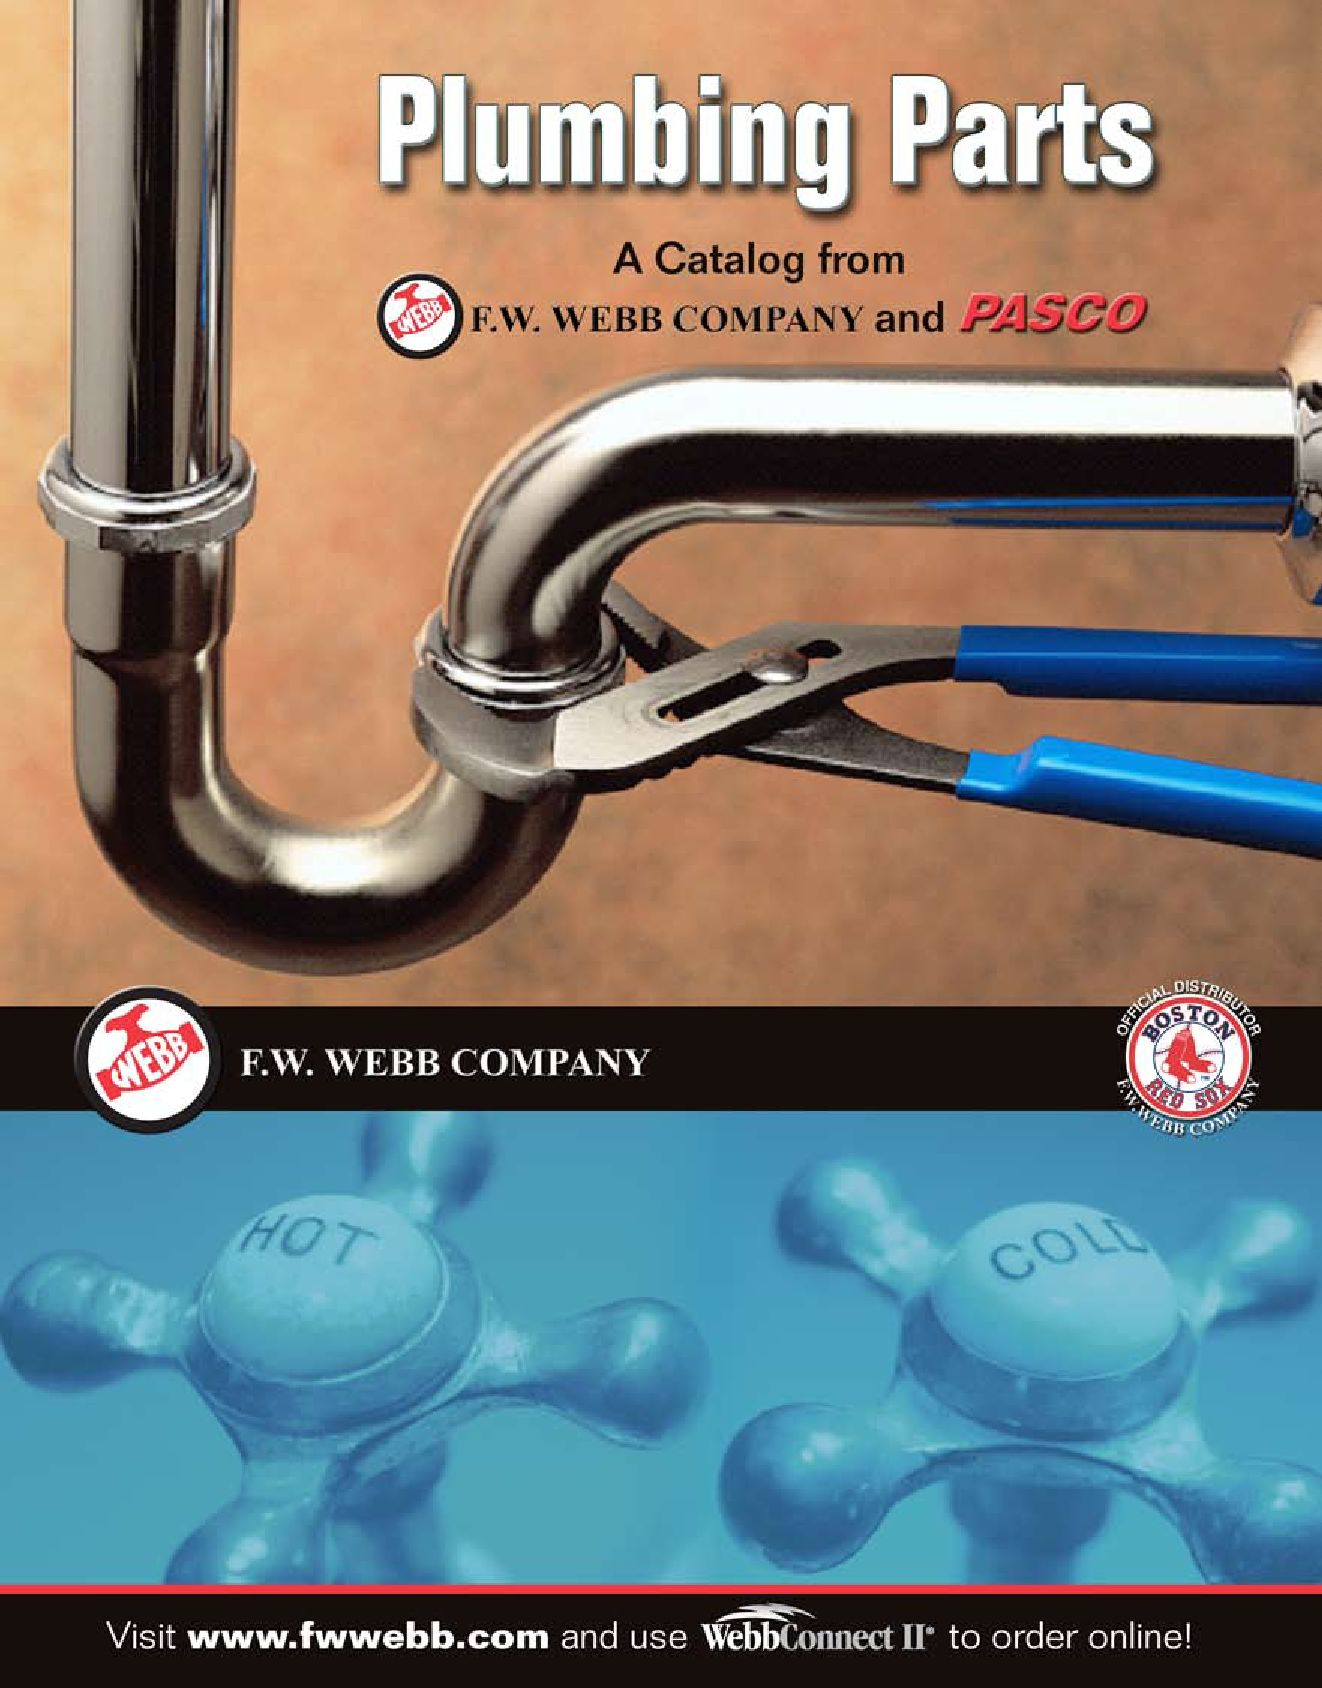 Plumbing parts catalog by f w webb company issuu